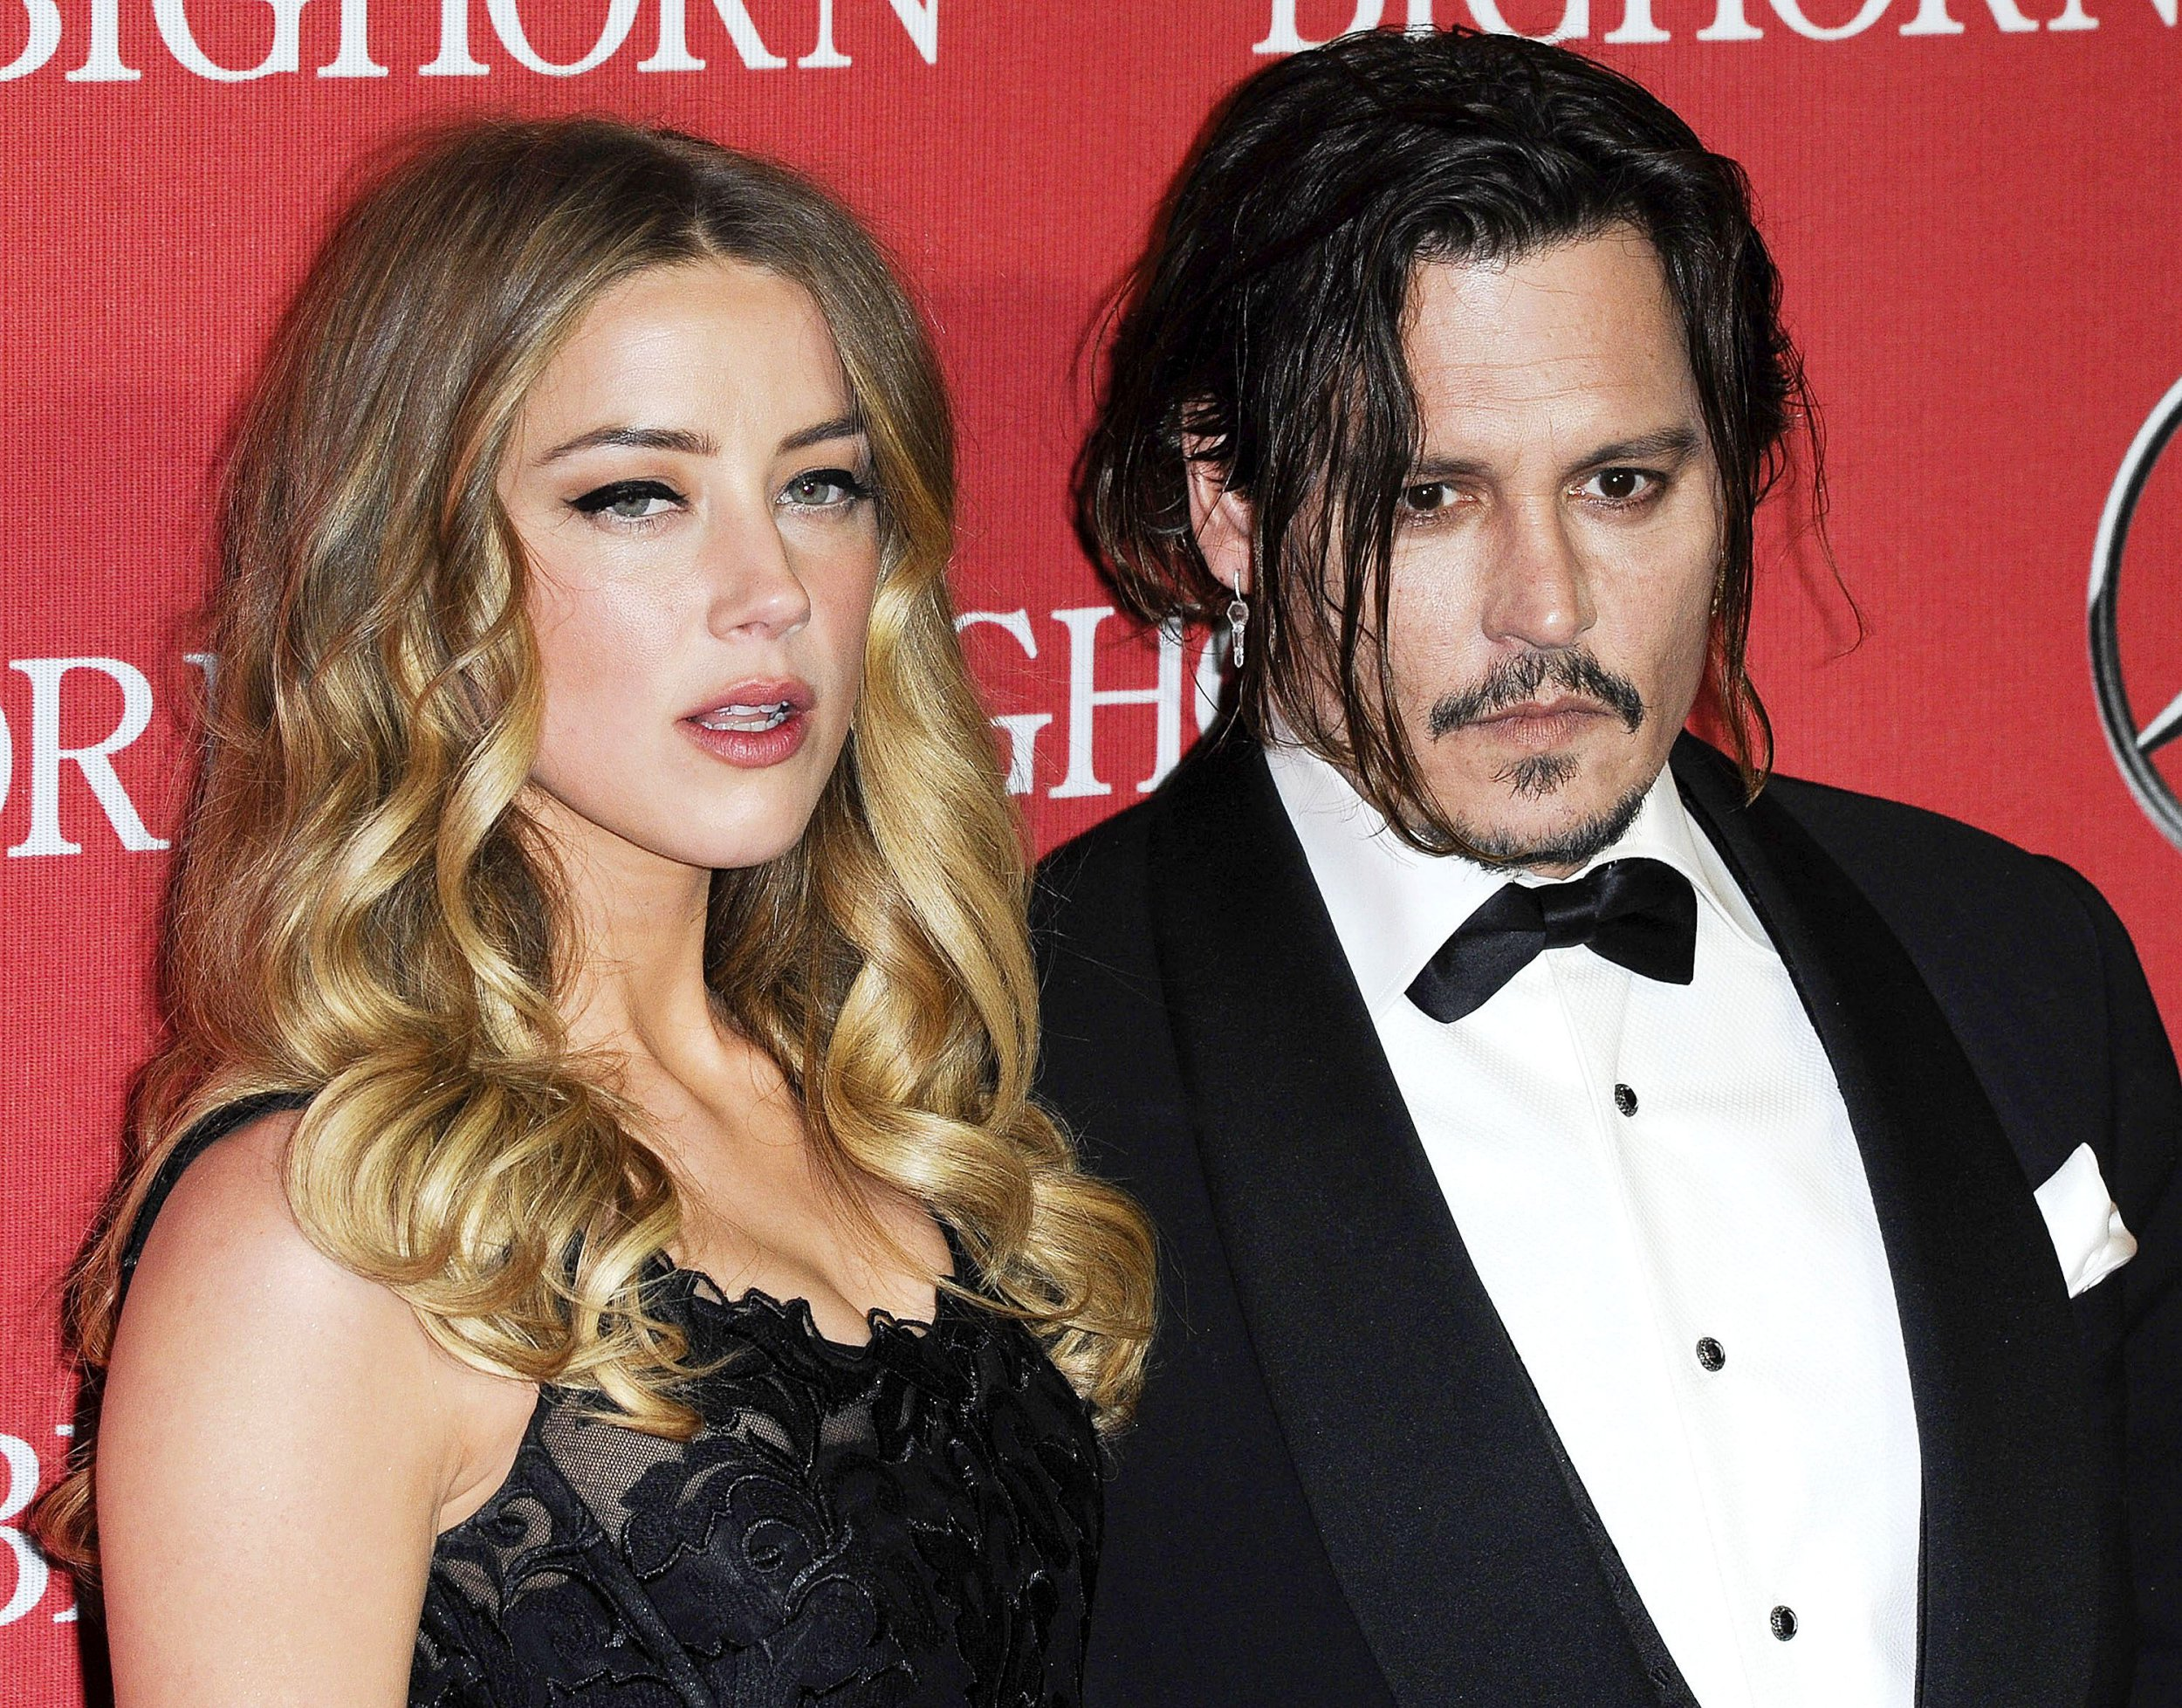 Mandatory Credit: Photo by Broadimage/REX/Shutterstock (5505643b) Amber Heard, Johnny Depp Palm Springs International Film Festival Gala, Arrivals, America - 02 Jan 2016 27th Annual Palm Springs International Film Festival Awards Gala